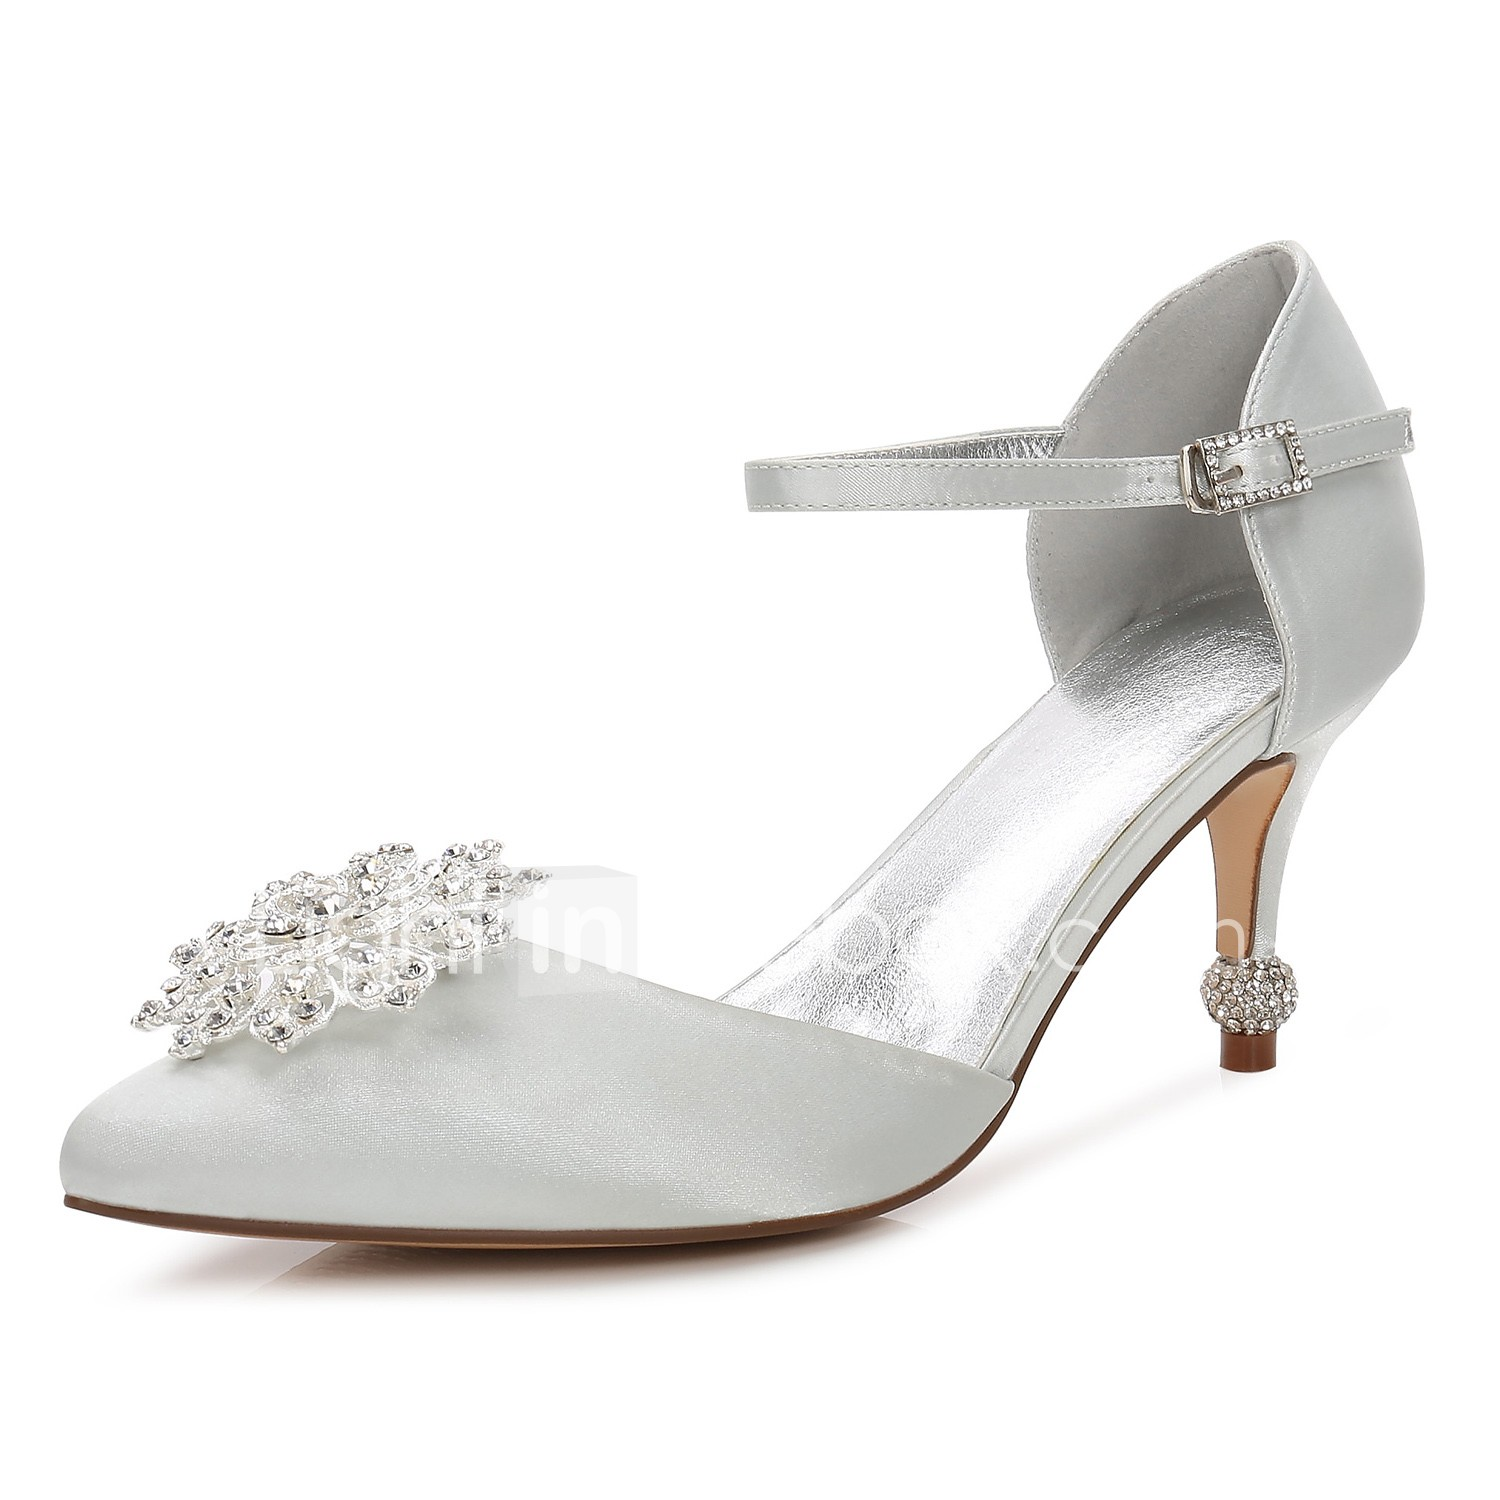 1c7ea1e79 Women's Shoes Satin Spring / Summer Comfort / D'Orsay & Two-Piece / Basic  Pump Wedding Shoes Kitten Heel Pointed Toe Rhinestone / #06589583